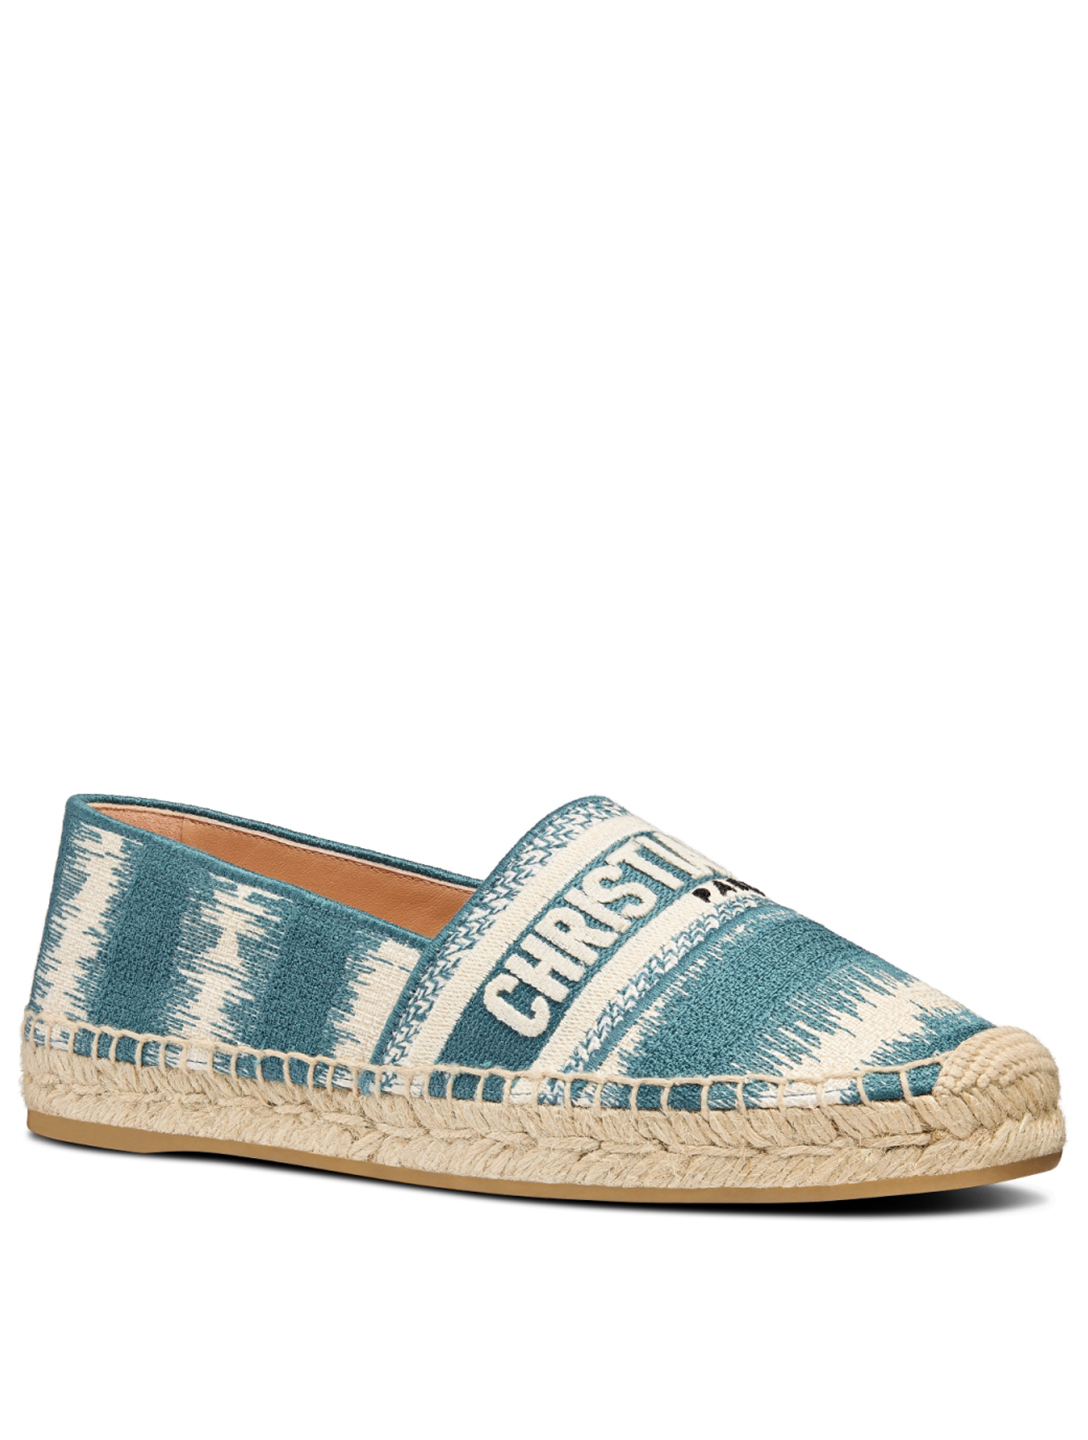 DIOR Granville D-Stripes Cotton Embroidery Espadrilles Women's Blue